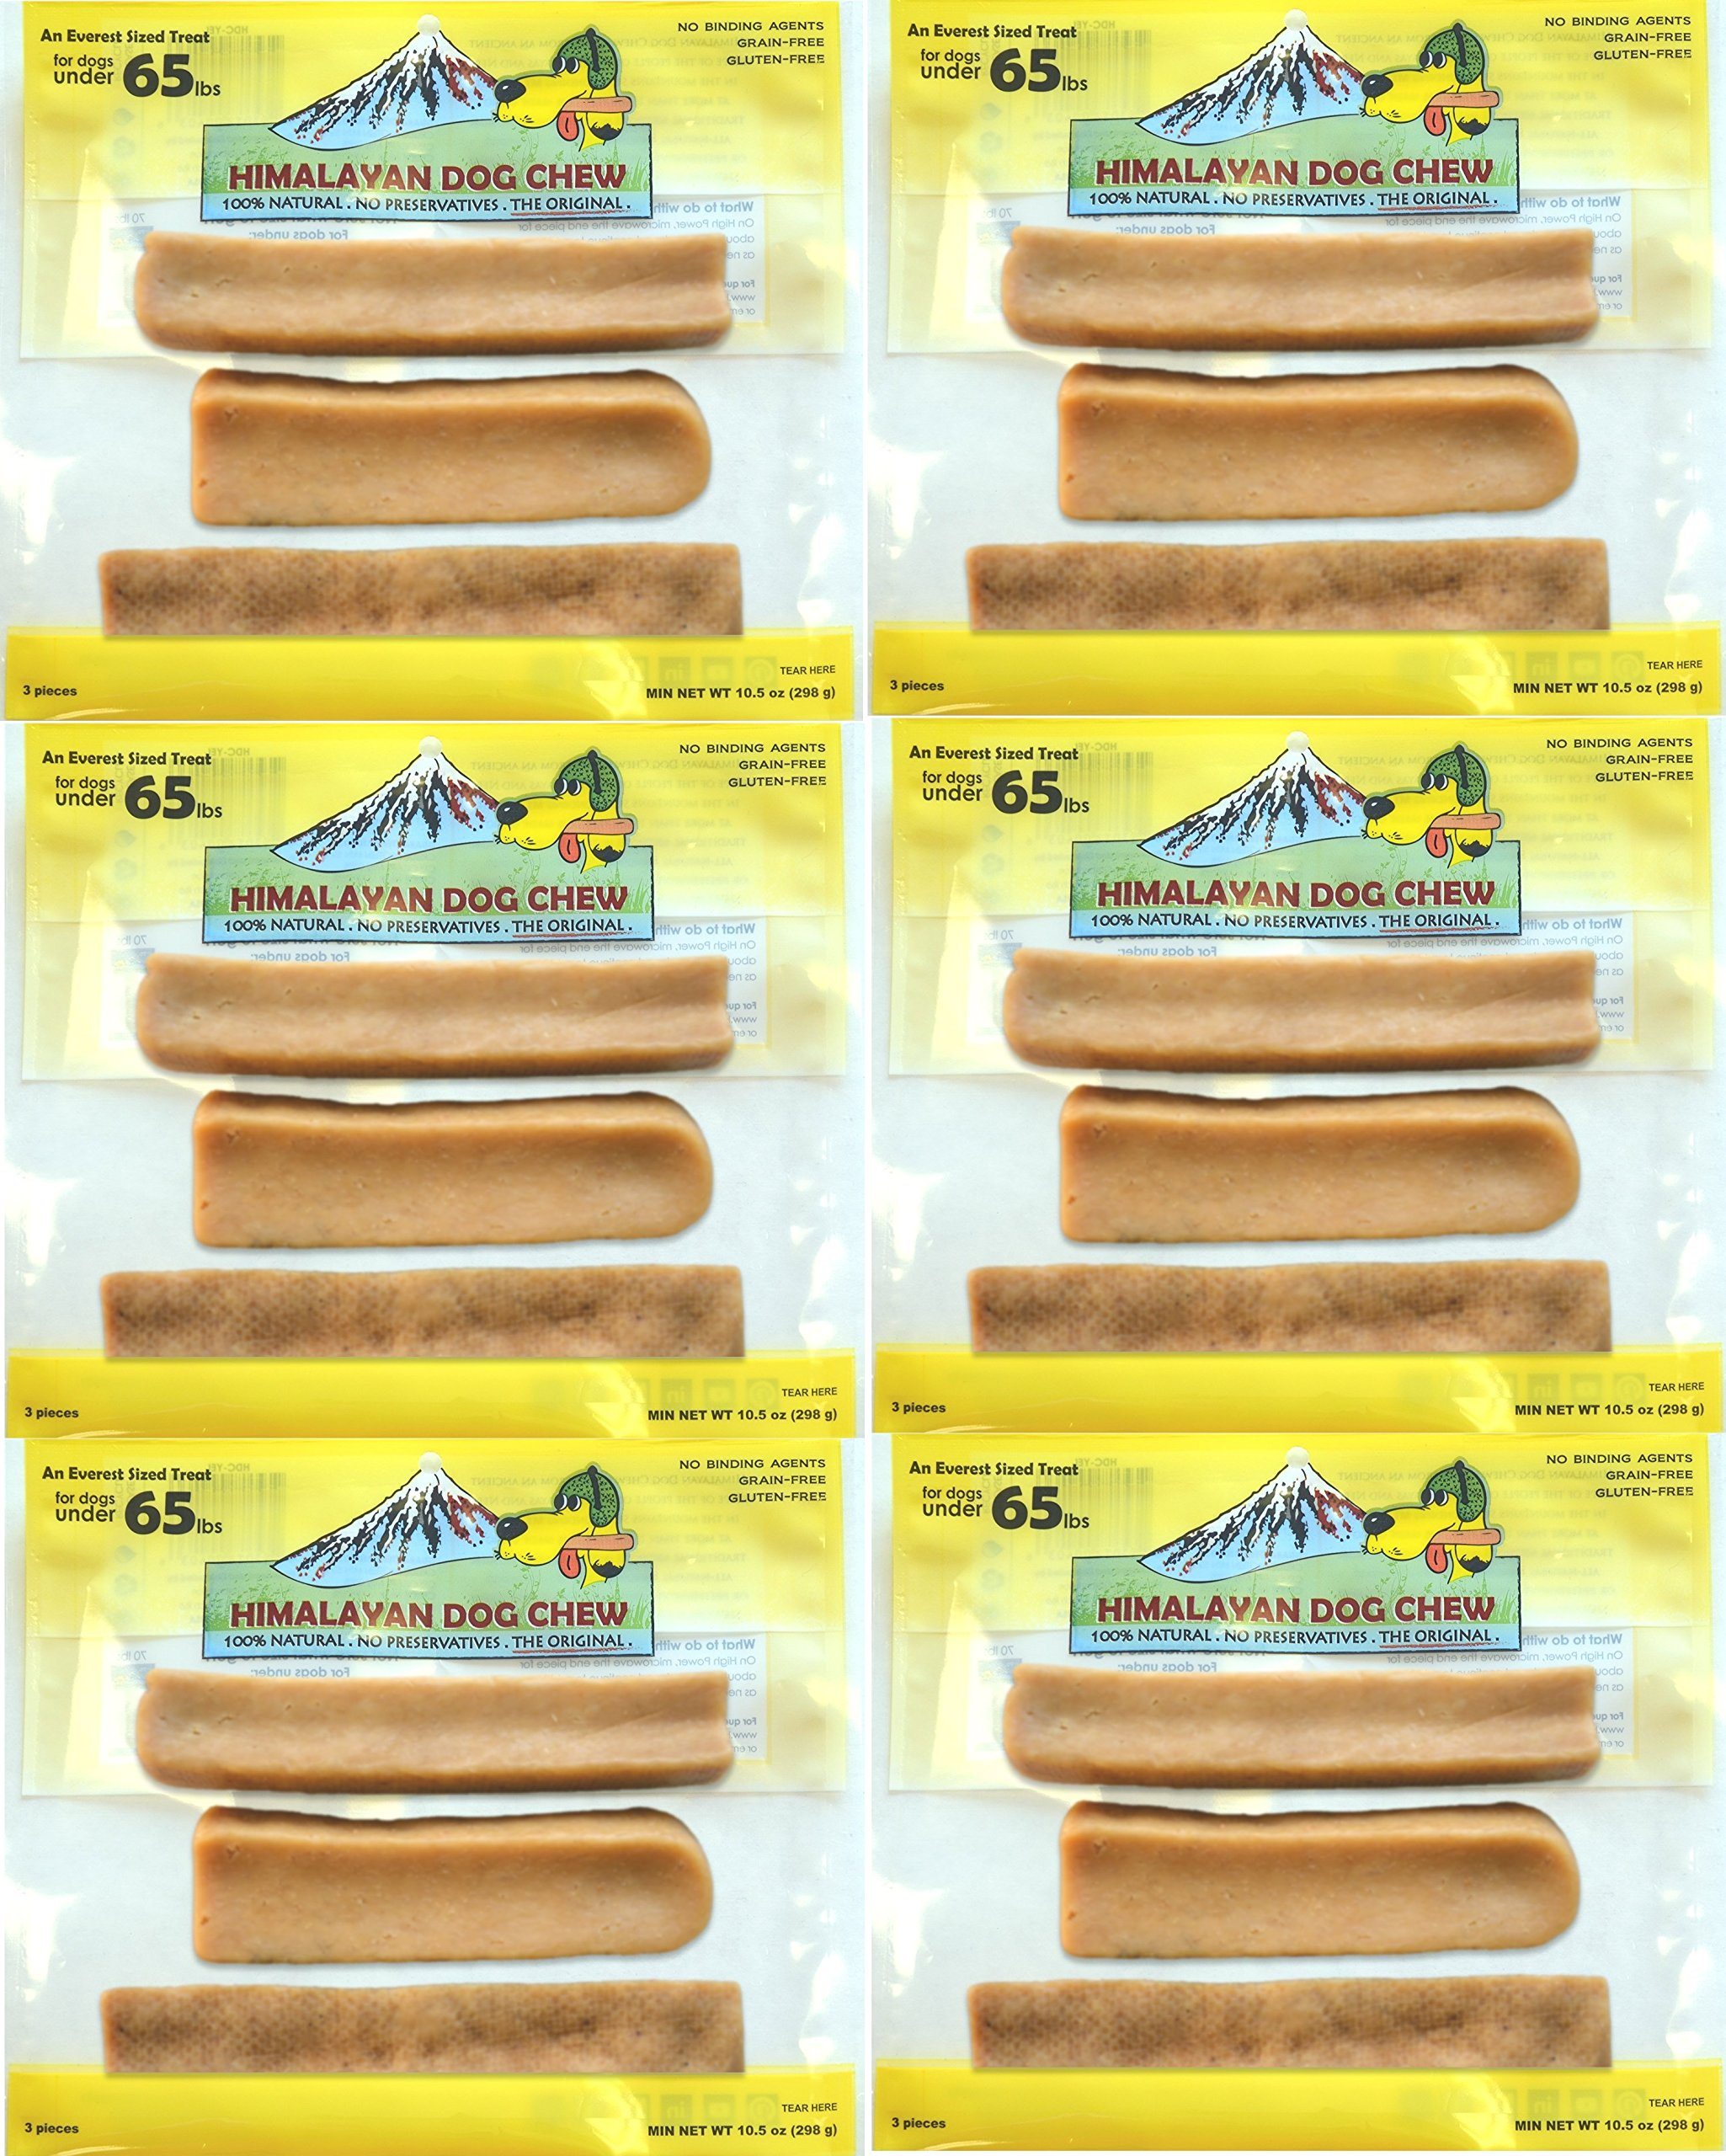 FRESH HIMALAYAN DOG CHEW 3 PIECE VALUE PACK LARGE 10.5 OZ HEALTHY NATURAL LONG LASTING TREAT (6 Pack) by Himalayan Corporation